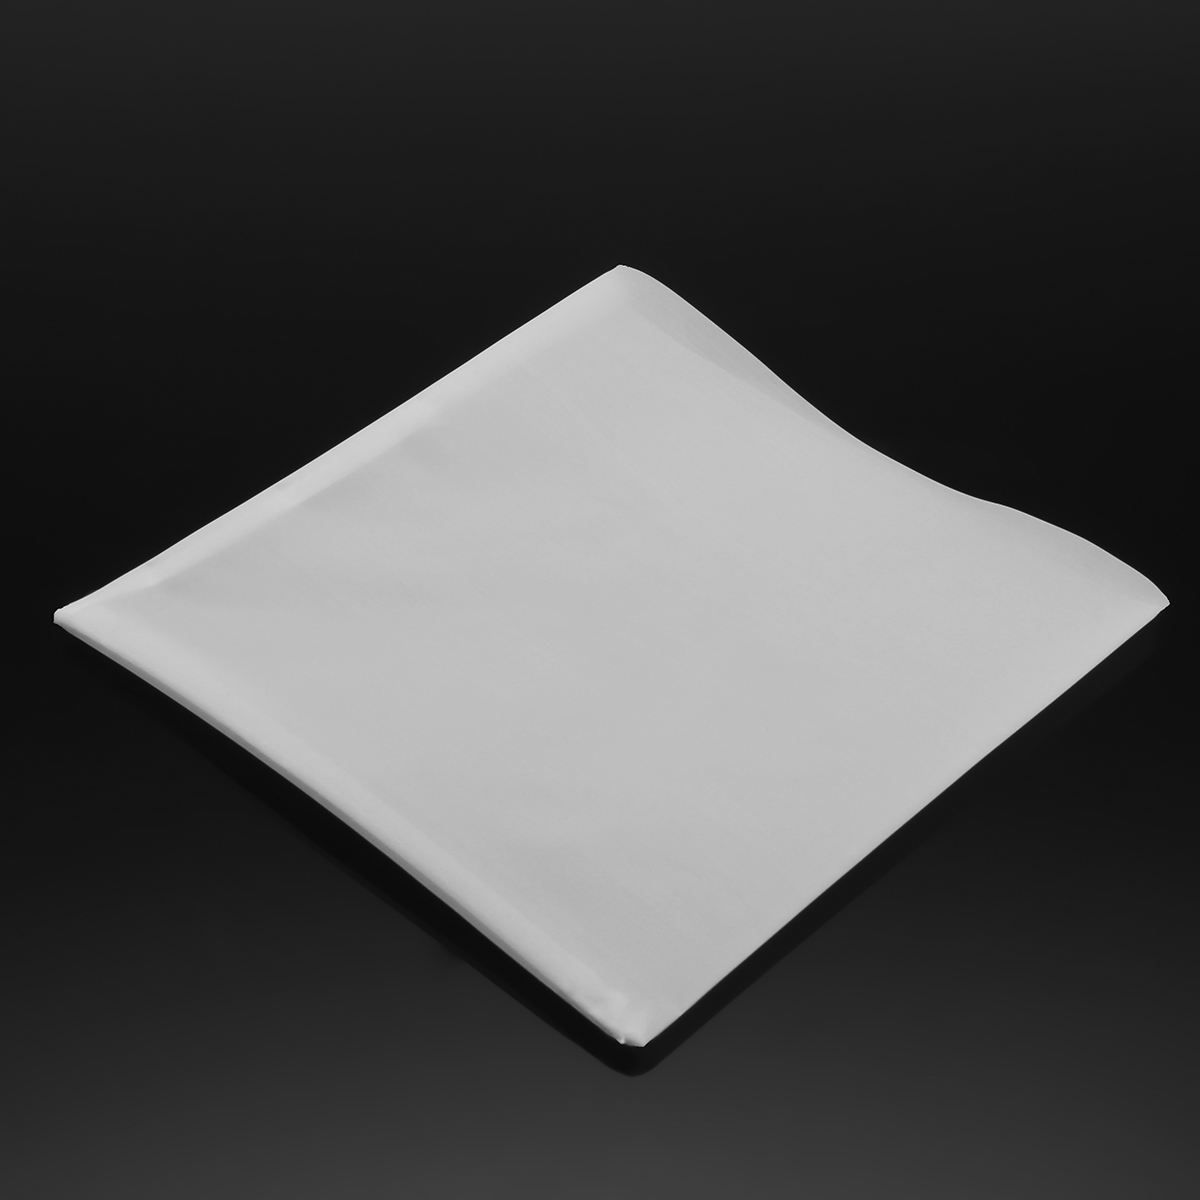 10Pcs 11x11cm Rosin Extraction Heat Press Filter Bags Nylon 37 Micron White